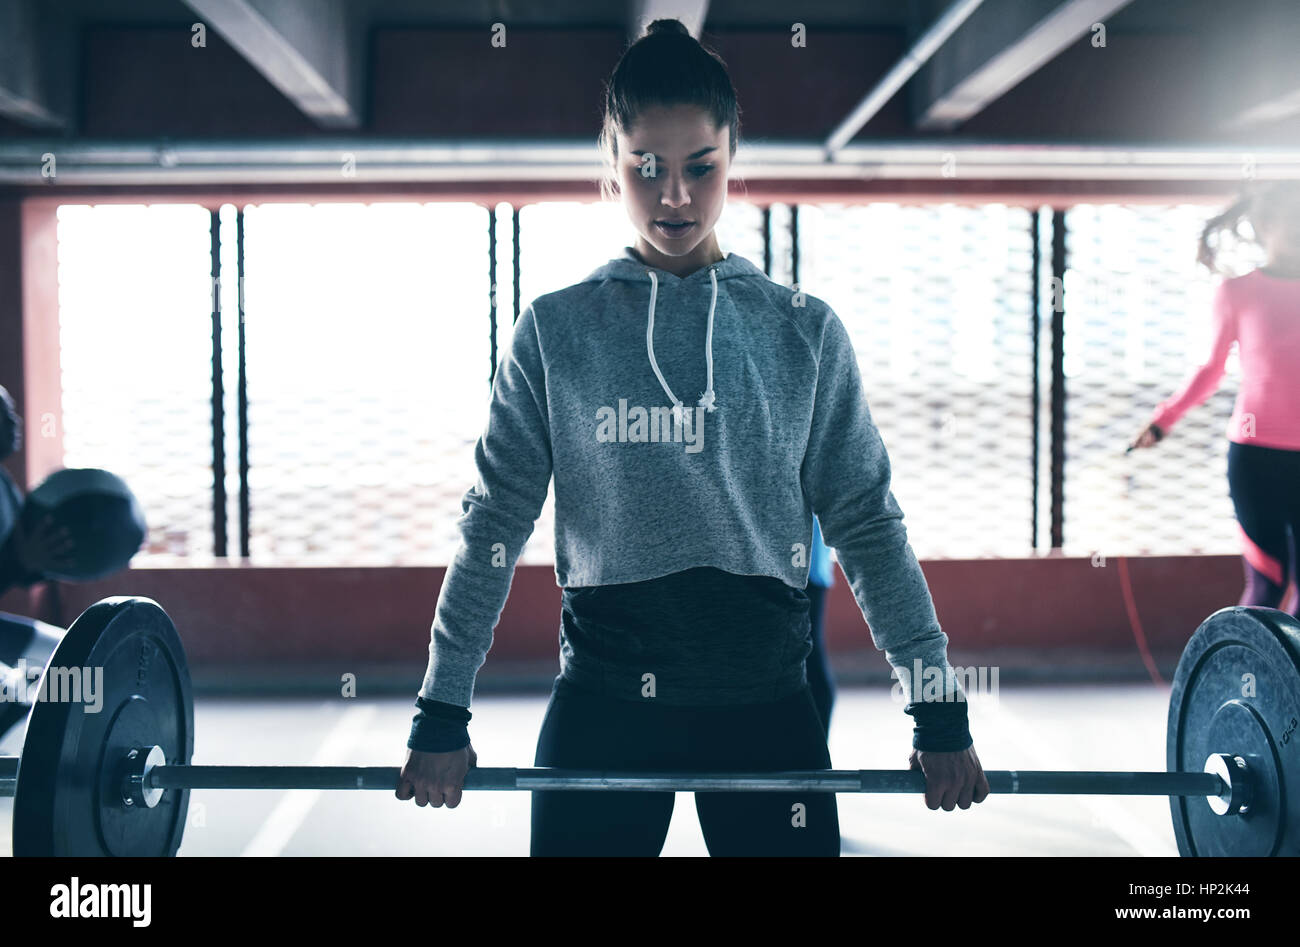 Shot of young pretty woman in sportswear training in gym and lifting barbell against barred window. - Stock Image